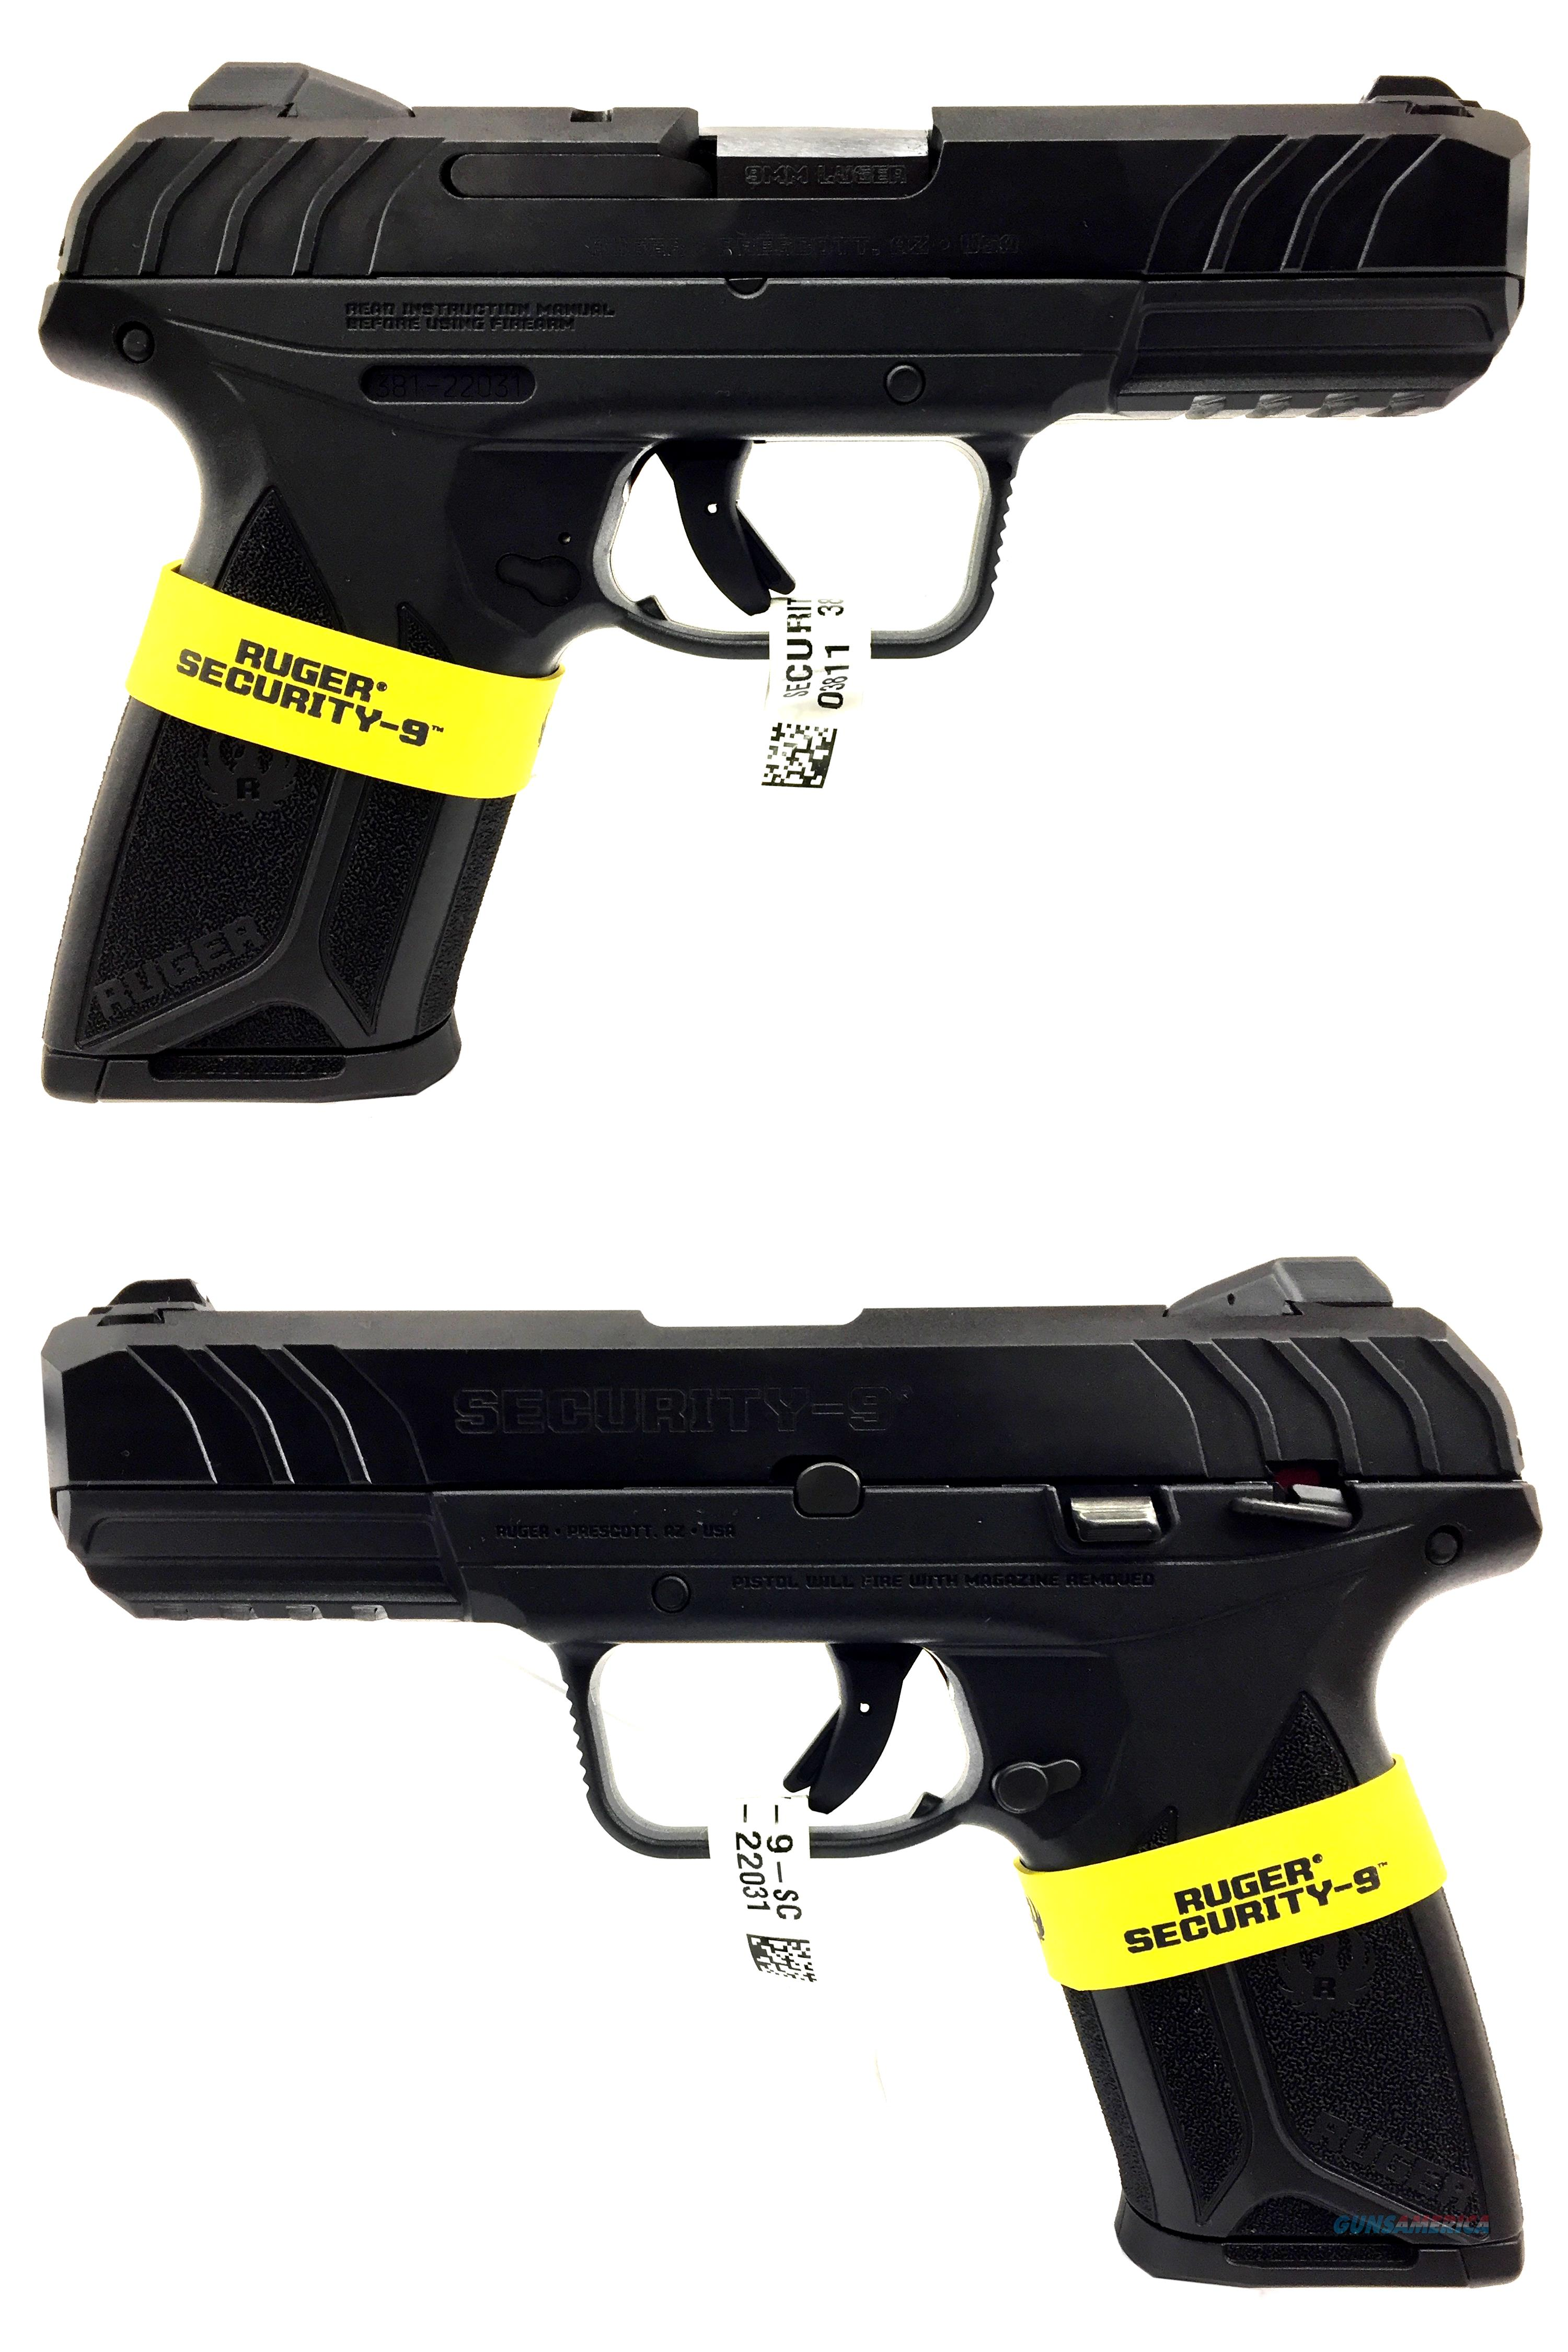 Ruger Security 9 Semi-Automatic Pistol  Guns > Pistols > Ruger Semi-Auto Pistols > Security 9